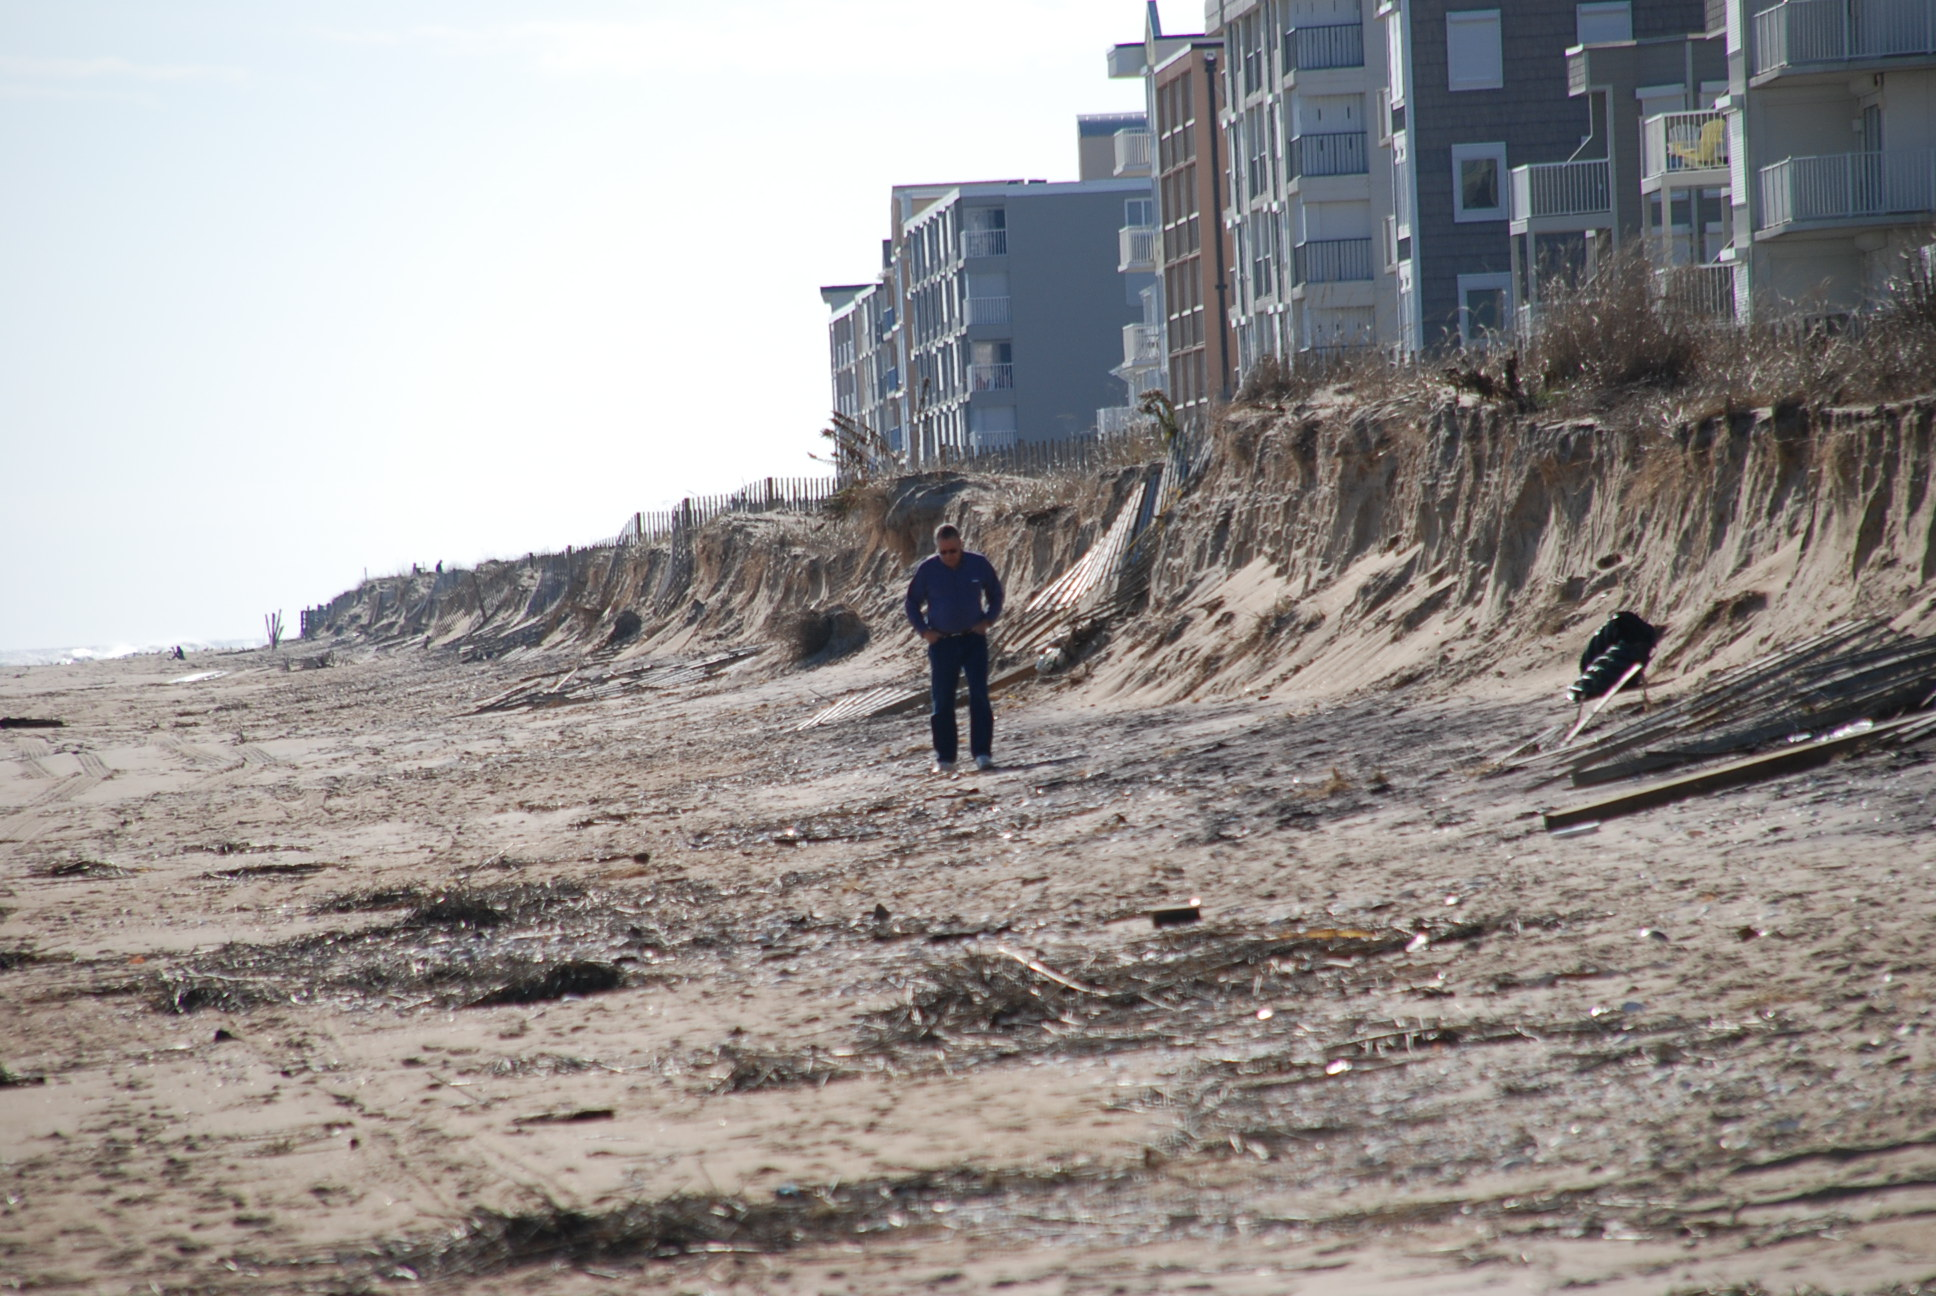 The beach is pictured after a significant fall story in 2009. File Photo